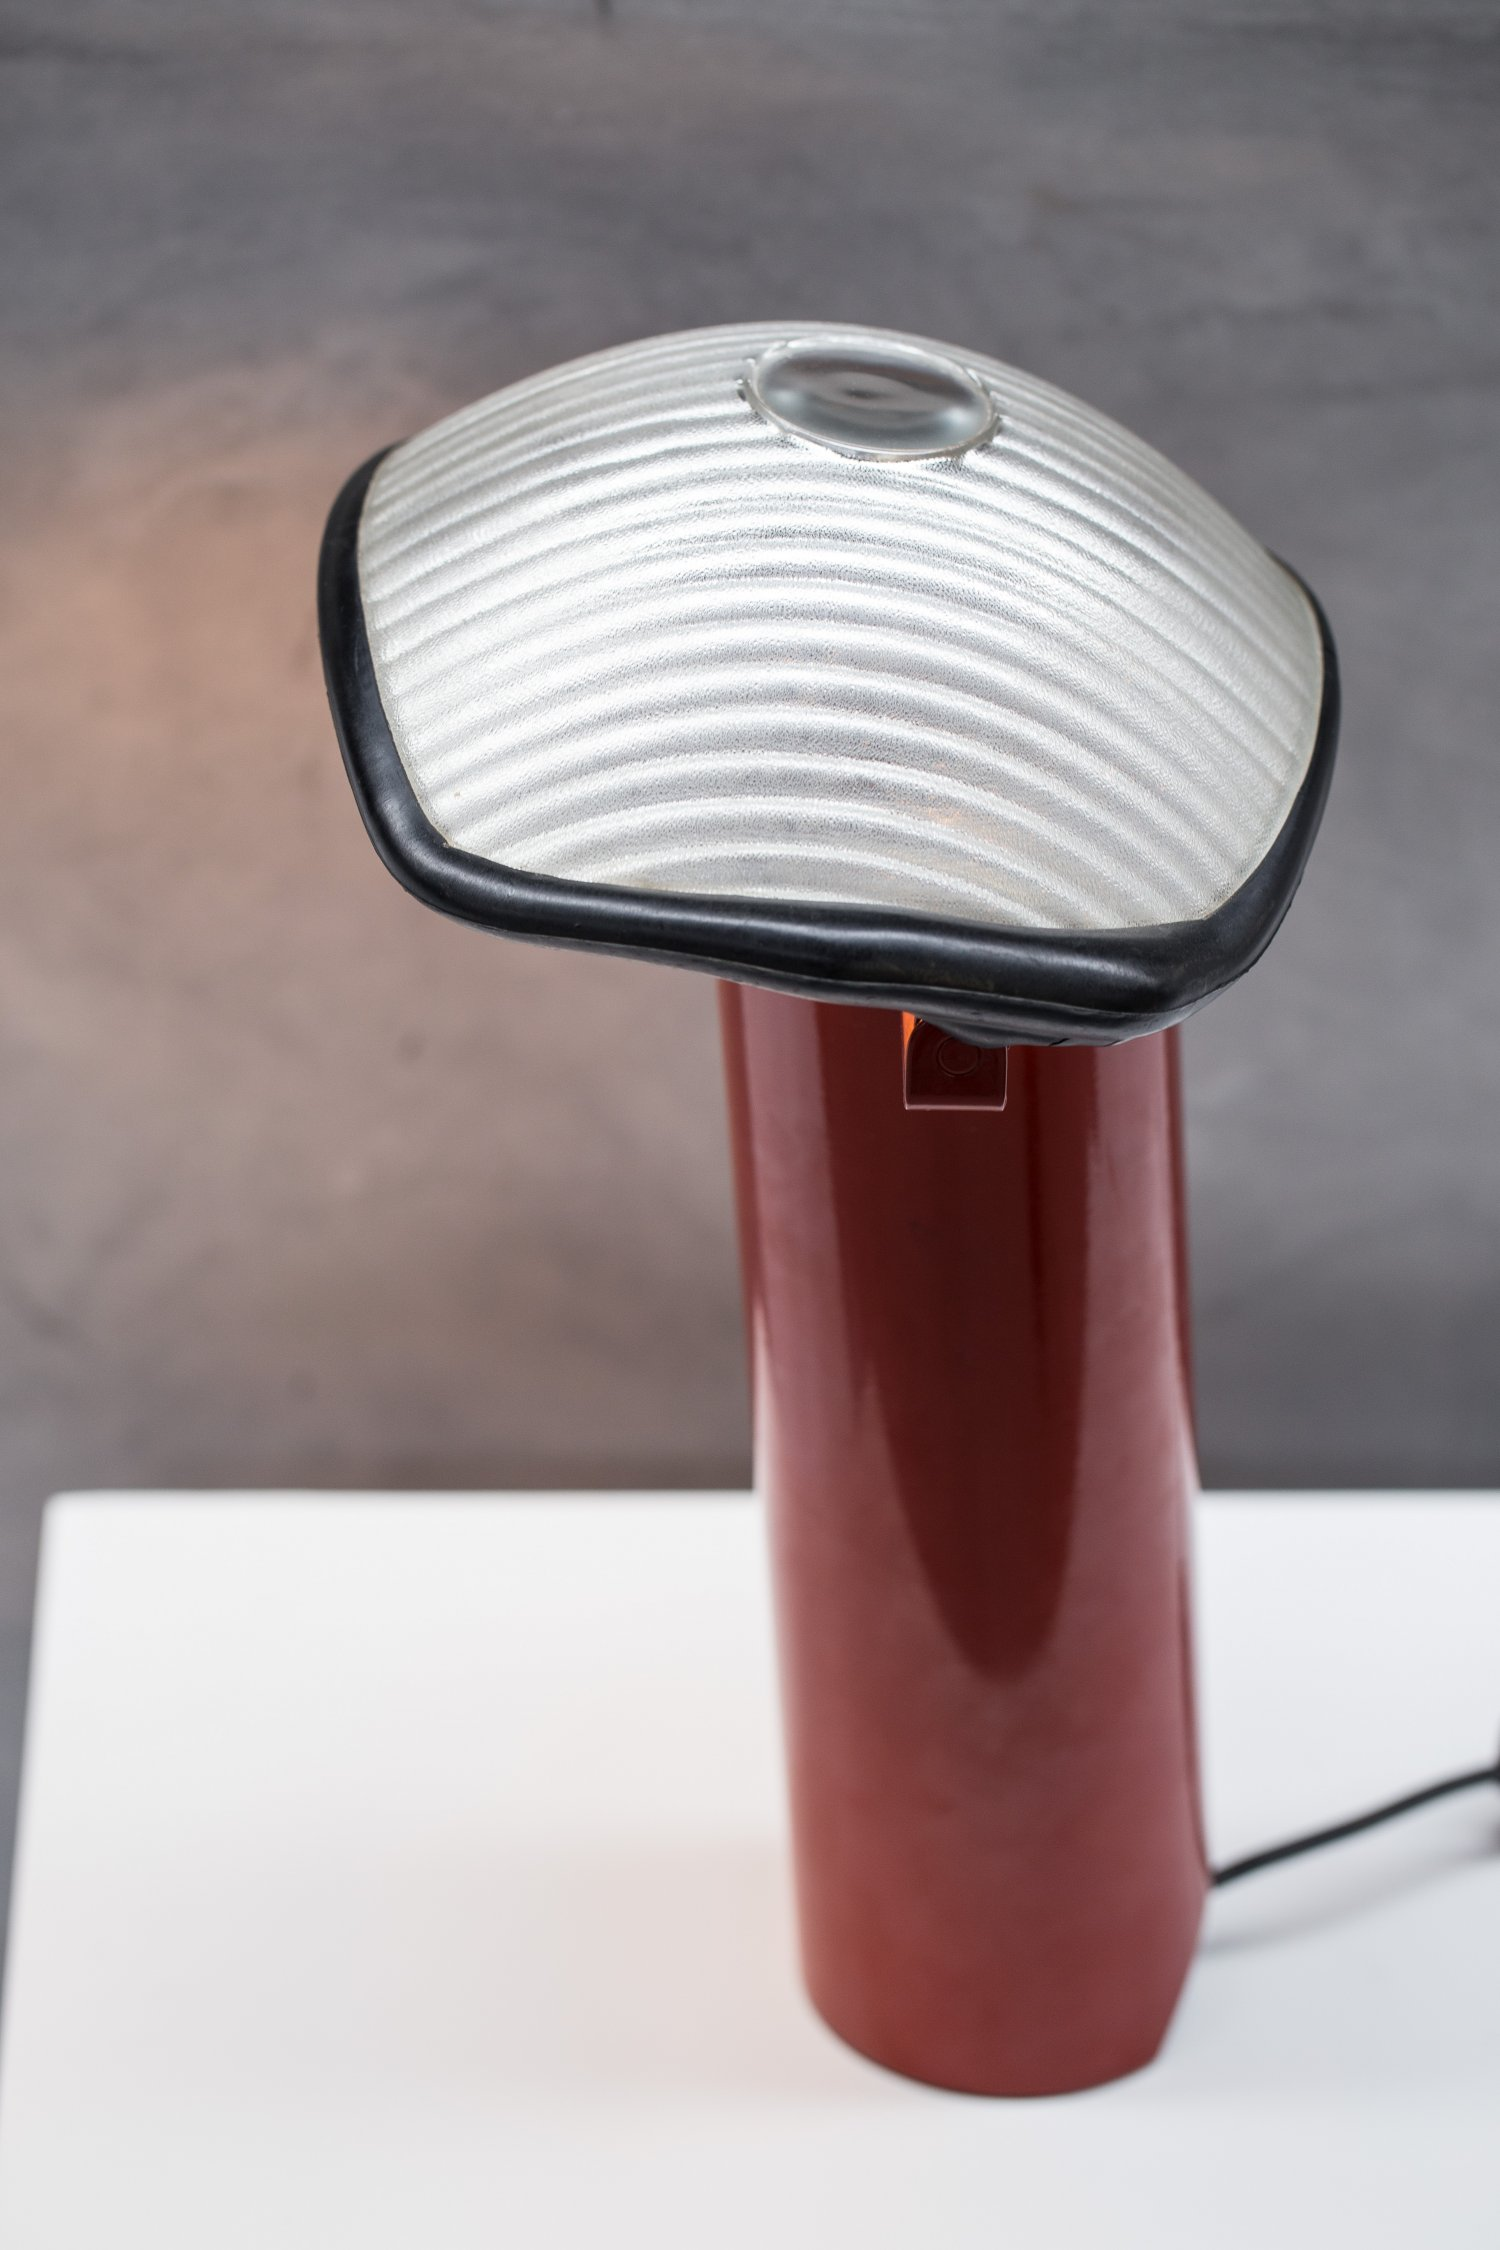 Brontes Table Lamp by Cini Boeri